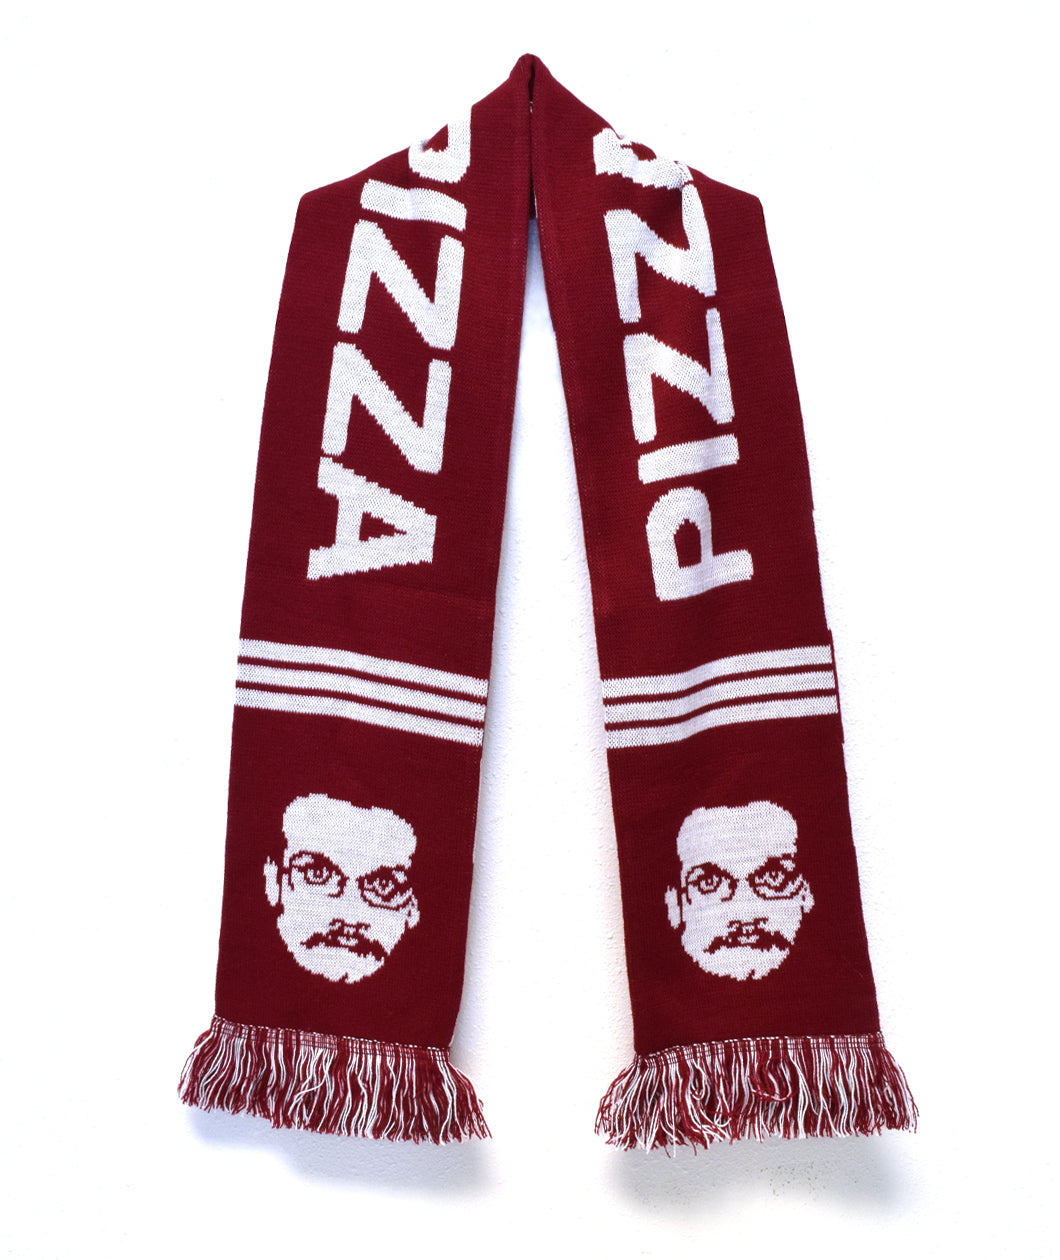 Pizza John Scarf